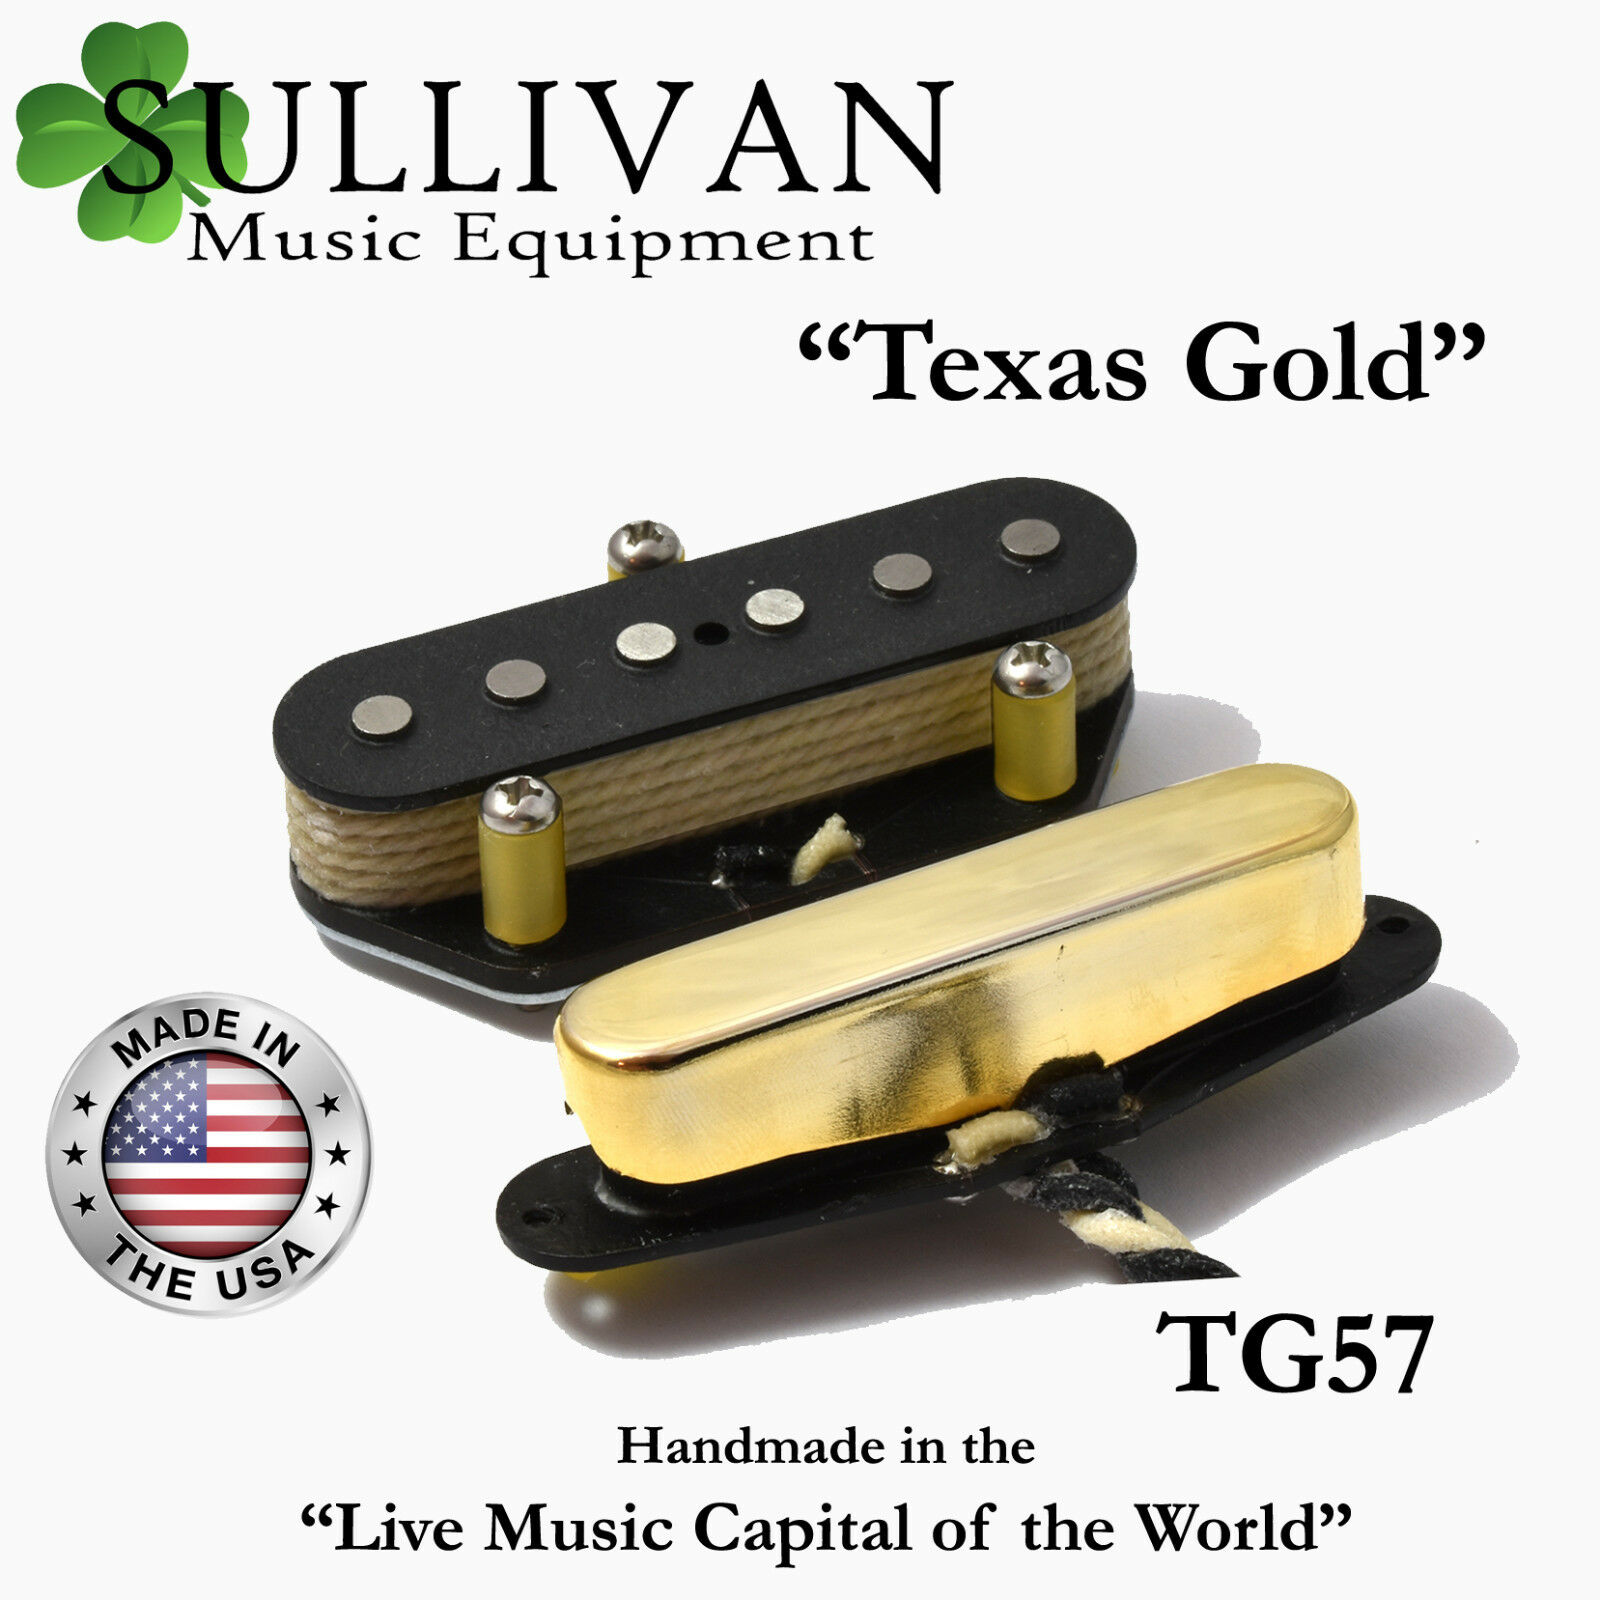 Custom Shop Telecaster Pickup Set Sme Texas Gold Special Hand Wound Sale On Fender Pickups Wiring Tele Tg57 1 Of 1only 0 Available